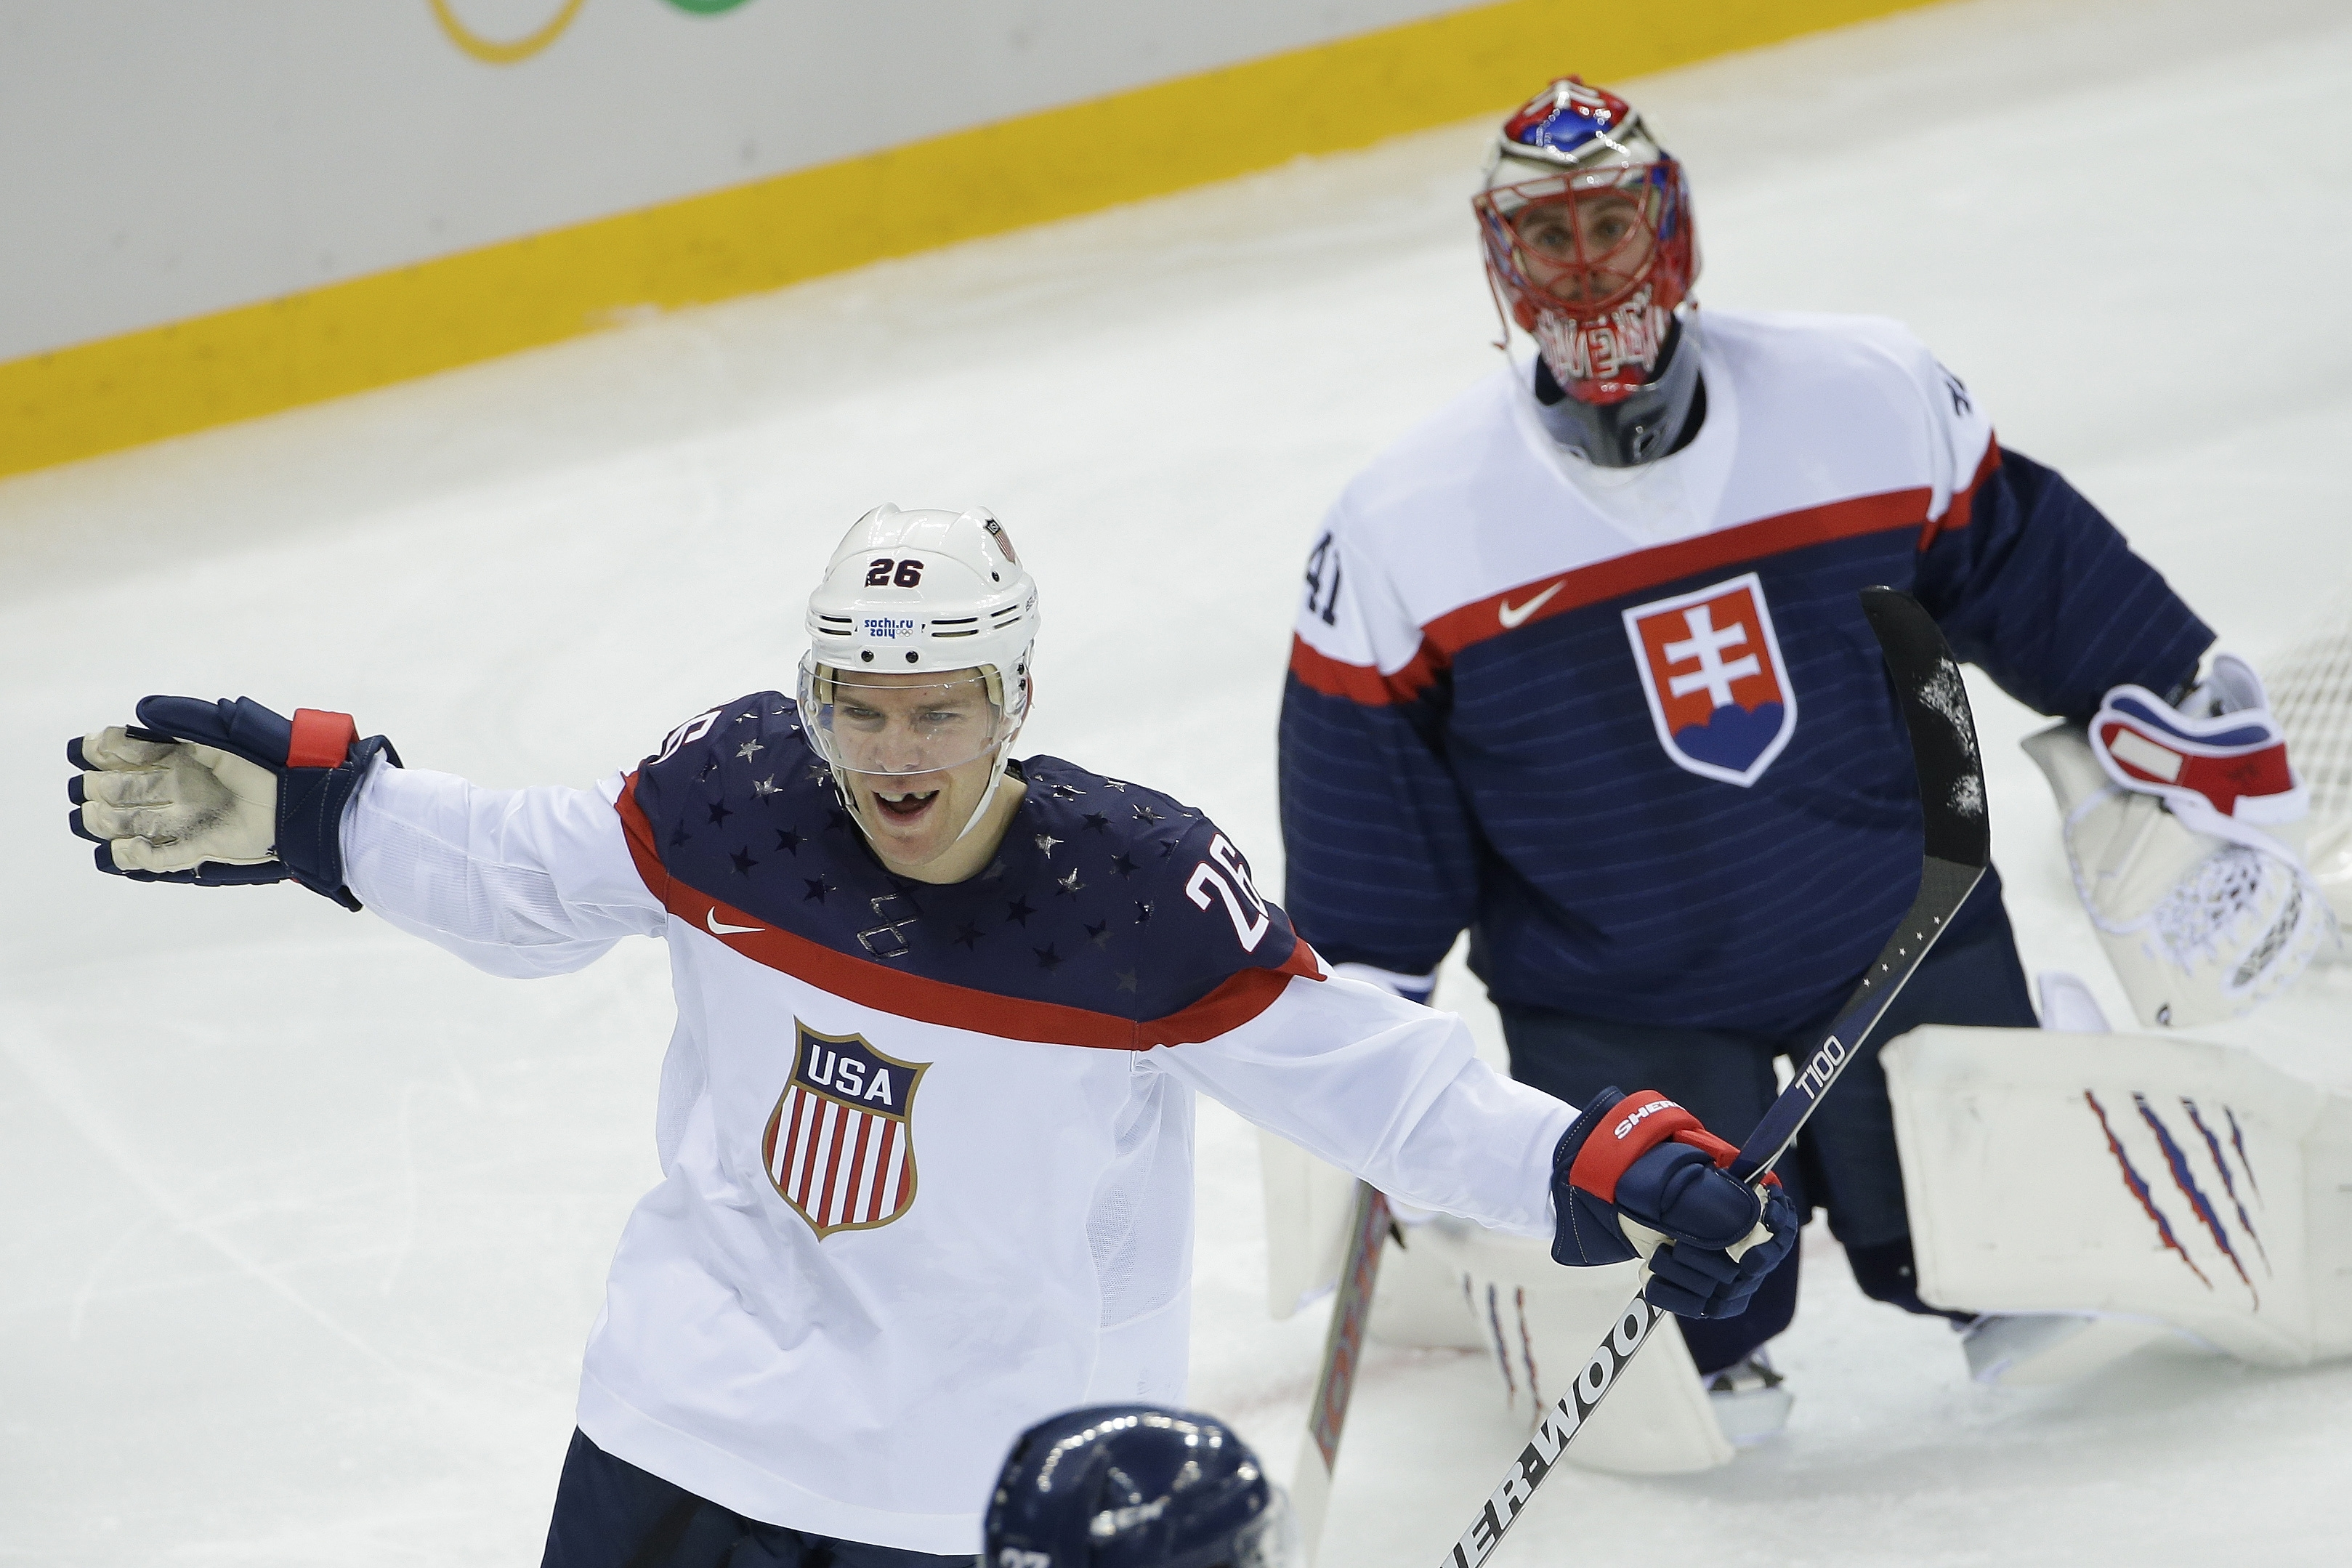 Paul Stastny celebrates his goal as the Slovakian goalie looks on at Shayba Arena in Sochi, Russia, on Thursday.